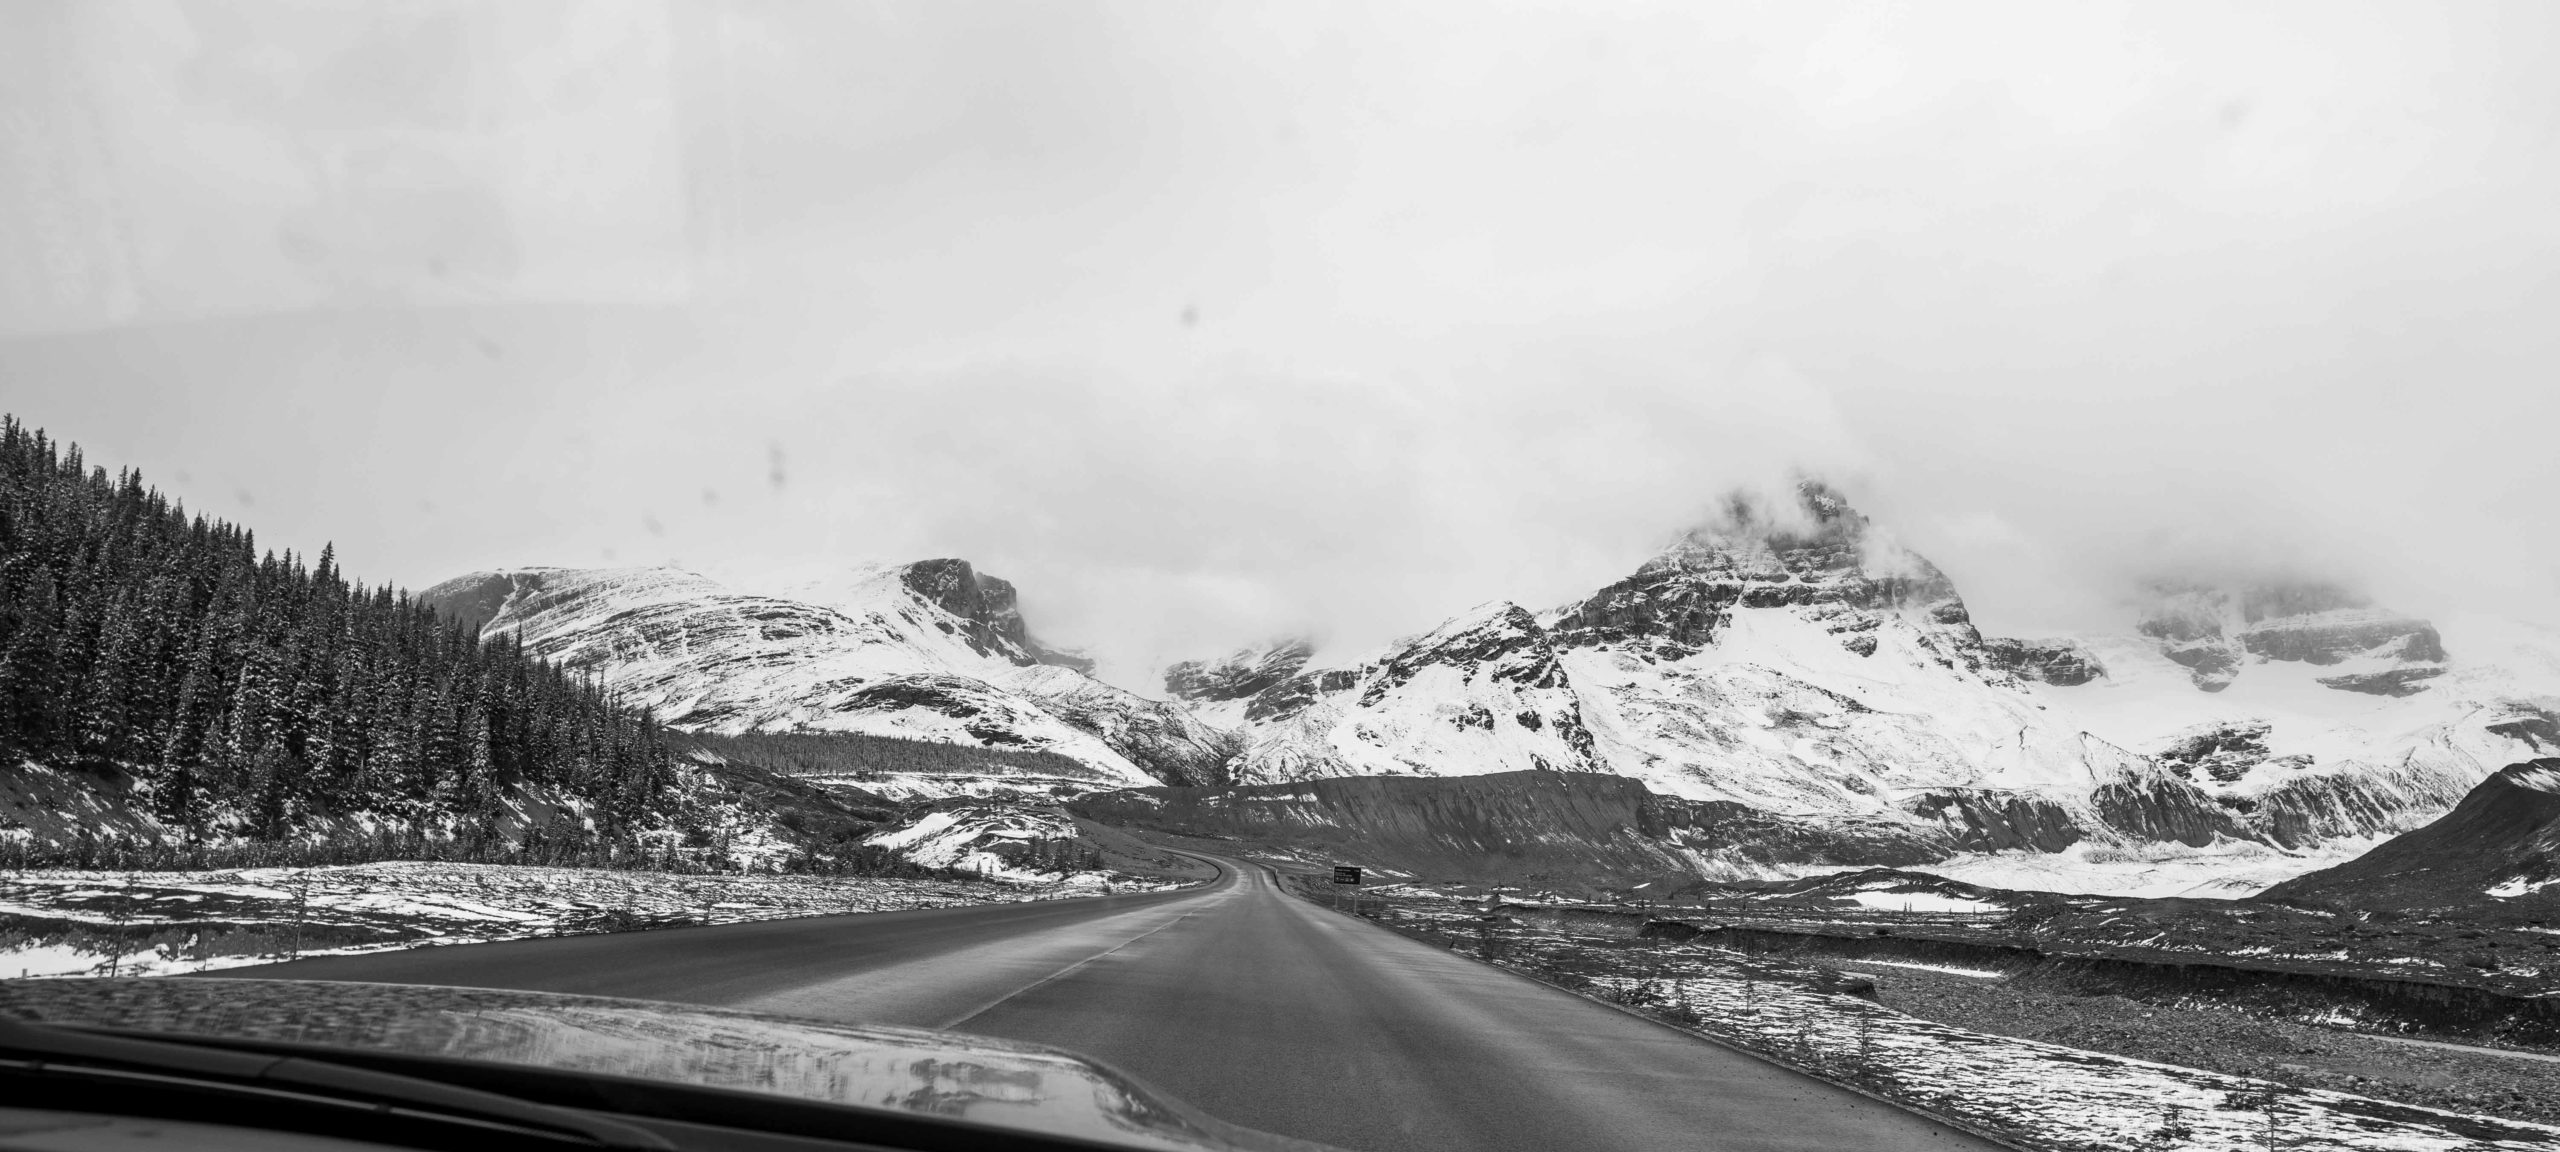 Driving through the Canadian Rockies road view as seen by the passenger seat by Jack Hawkins